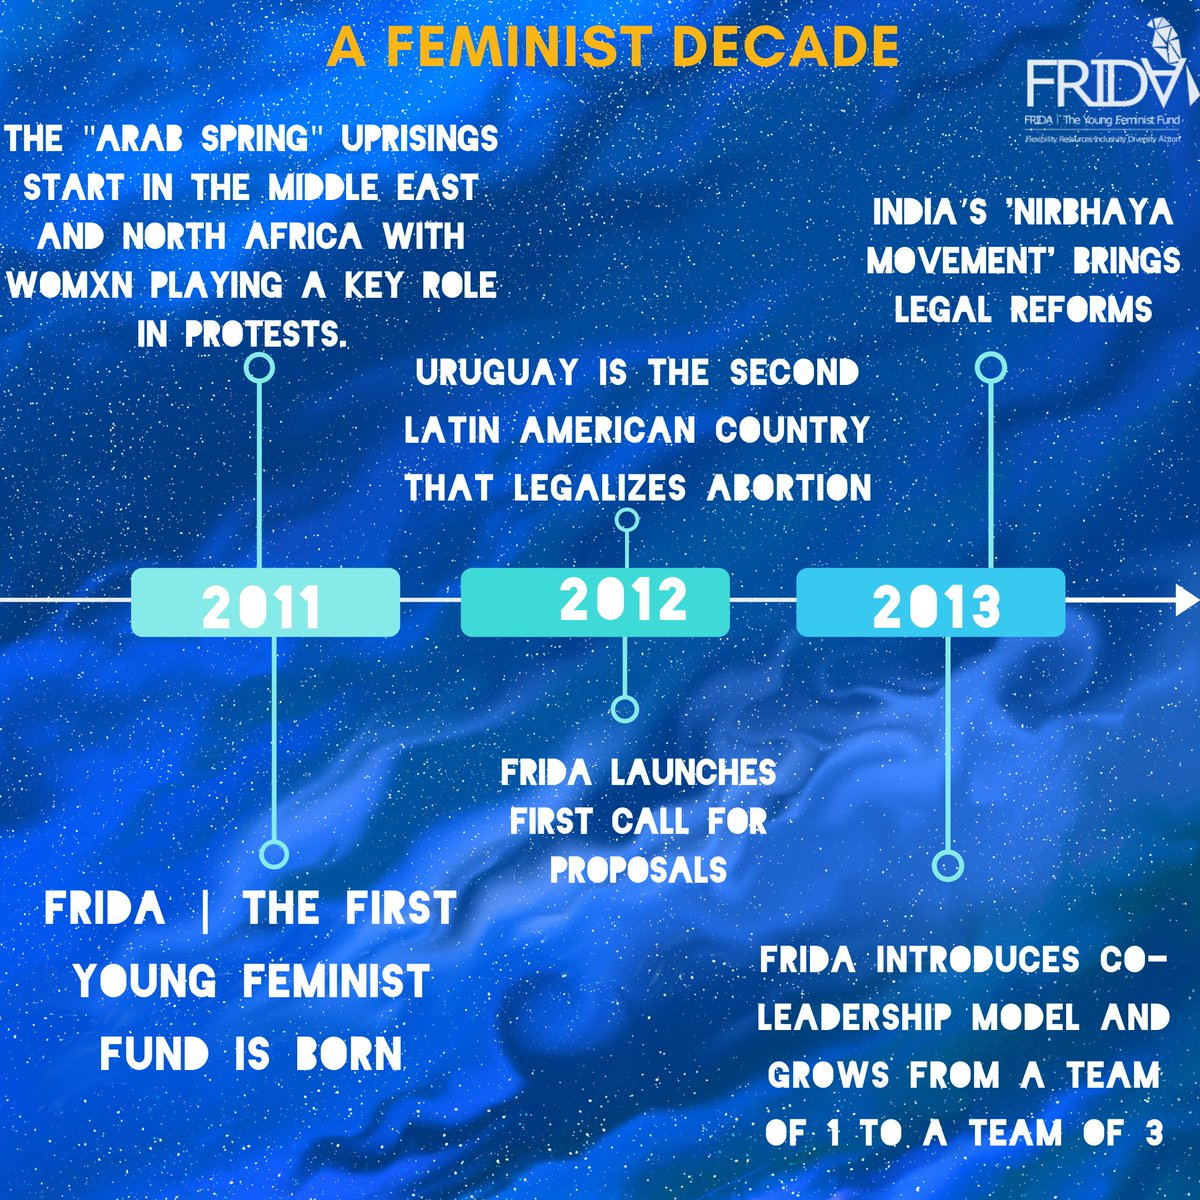 Young Feminists played a huge part in shaping the past feminist decade. We're taking a moment to reflect & honor the feminist work of the 2010s with a few snapshots  As we cocreate a feminist future into 2021, consider making a contribution to FRIDA here: